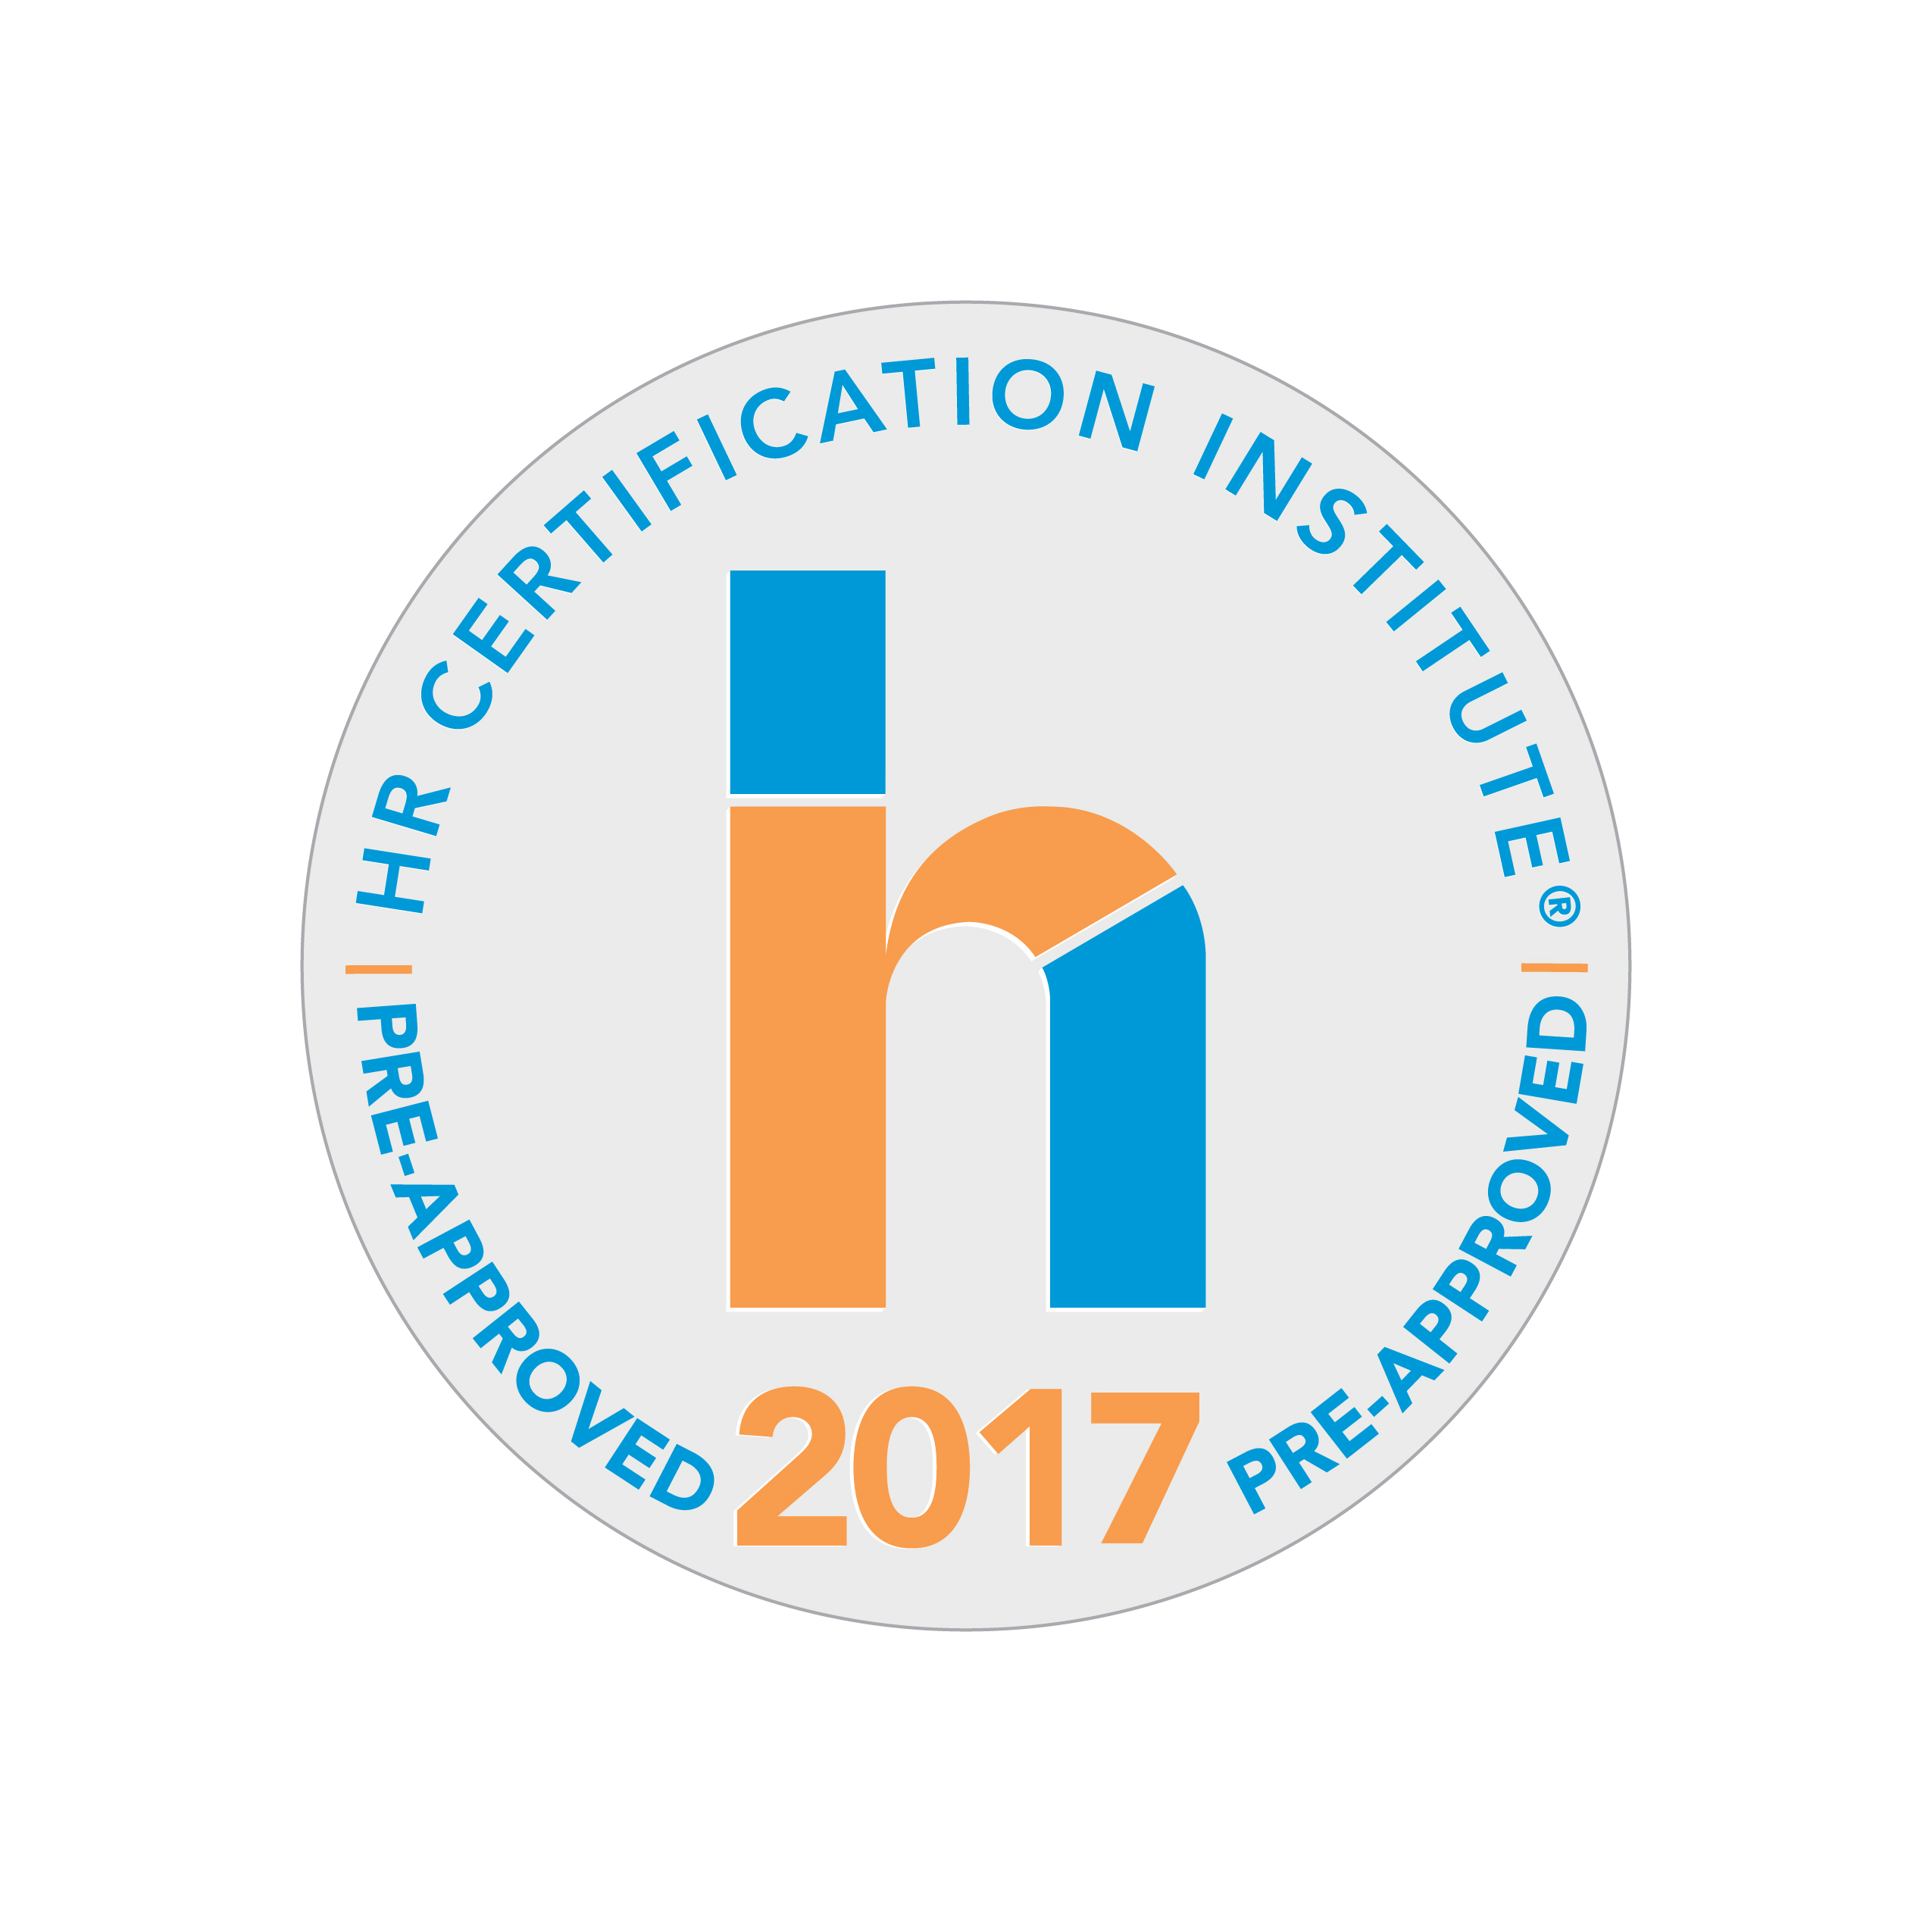 Hrci Shrm Certification Nhrma 2017 Conference